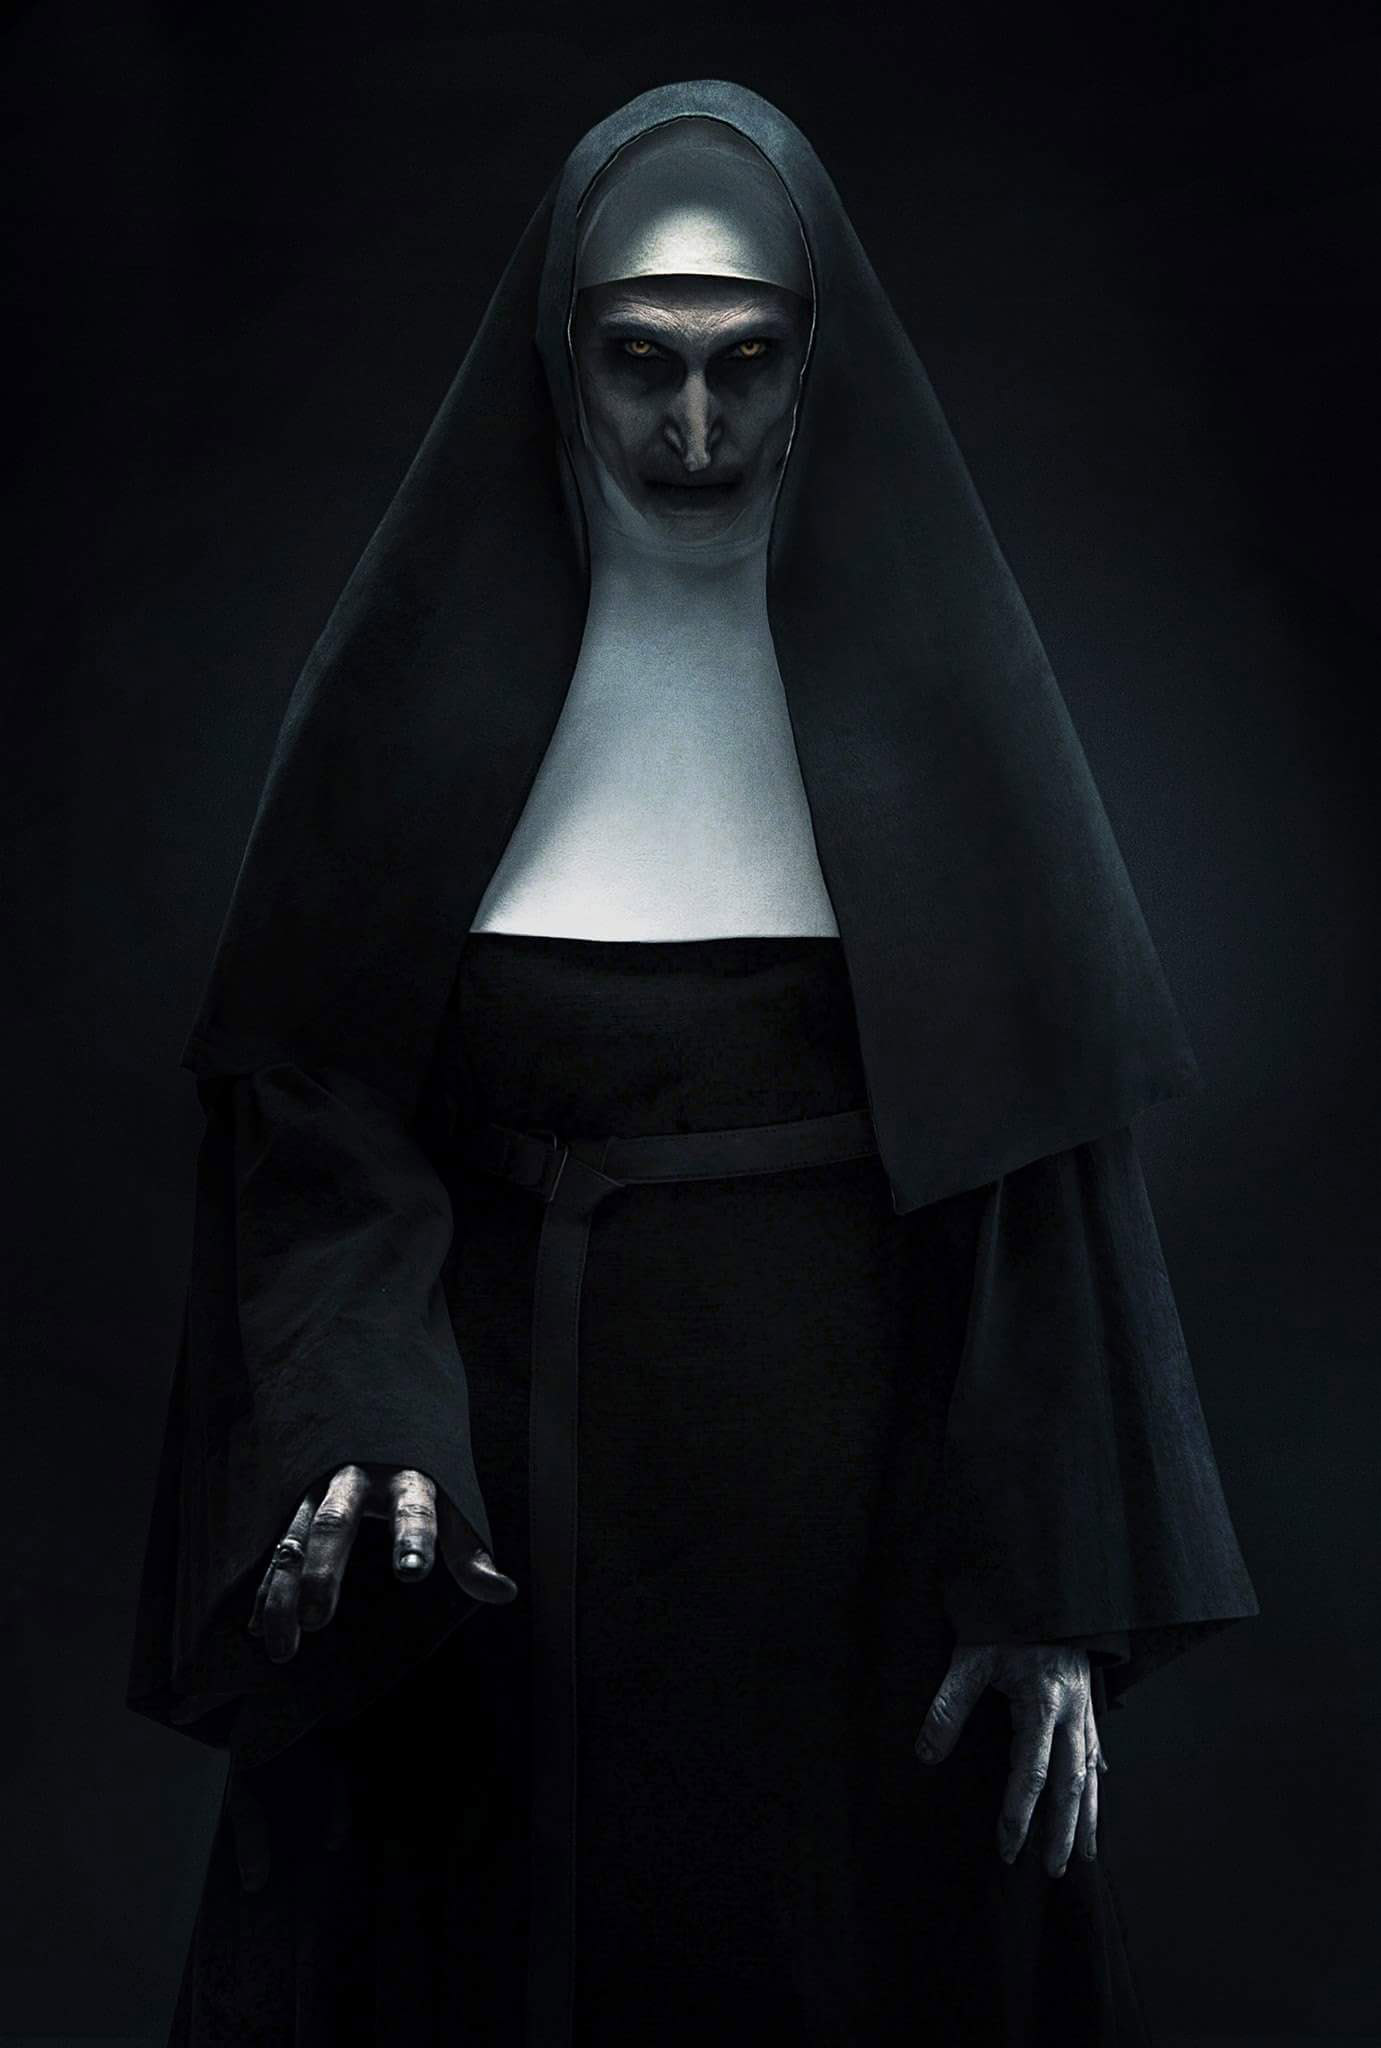 valak_the_nun_surfsdsa